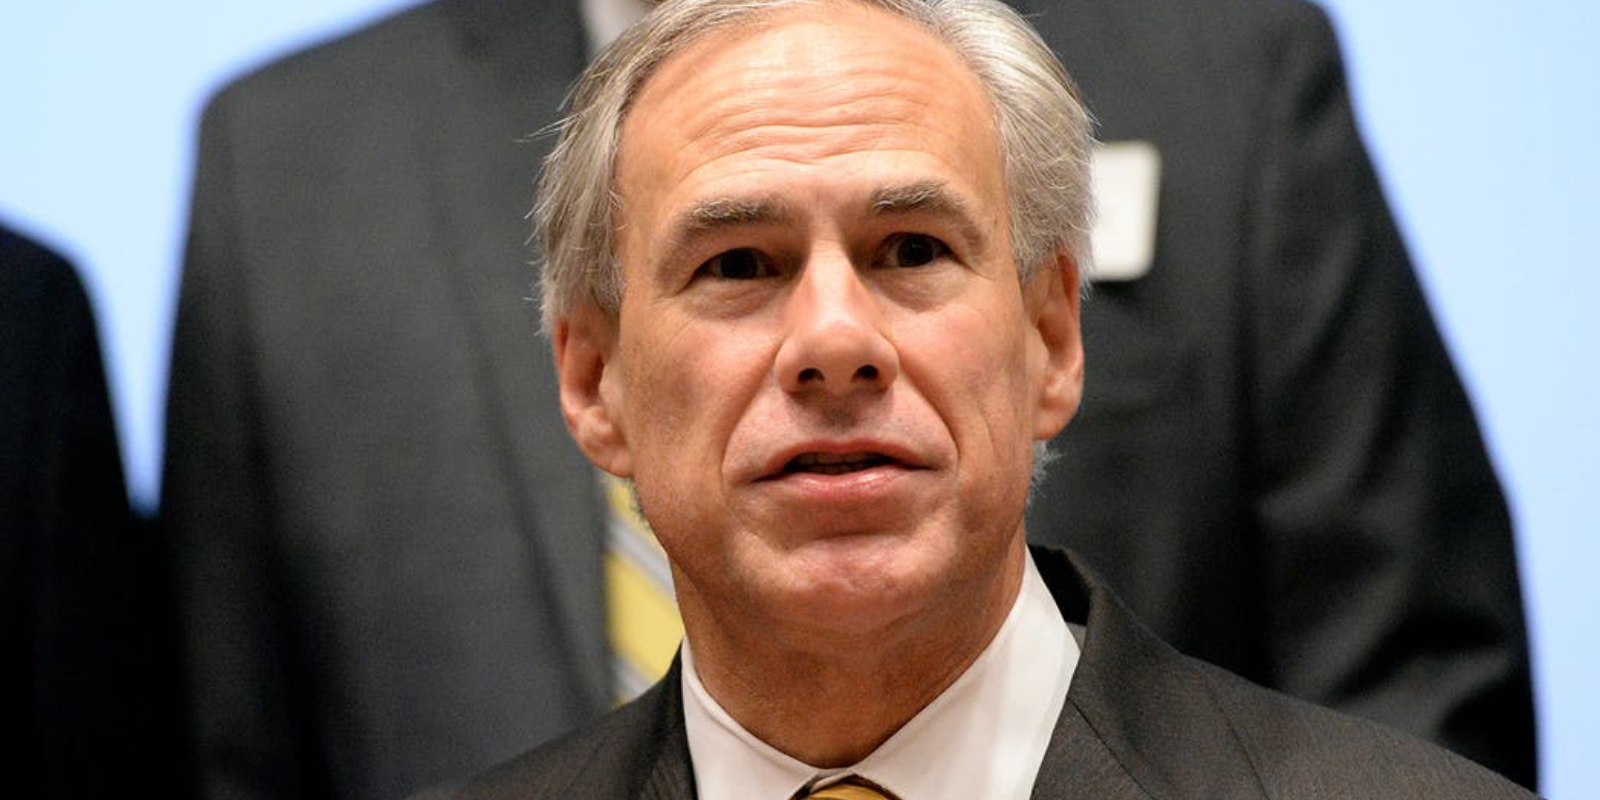 Texas Gov. Abbot signs executive order to fight 'federal overreach' from Biden administration